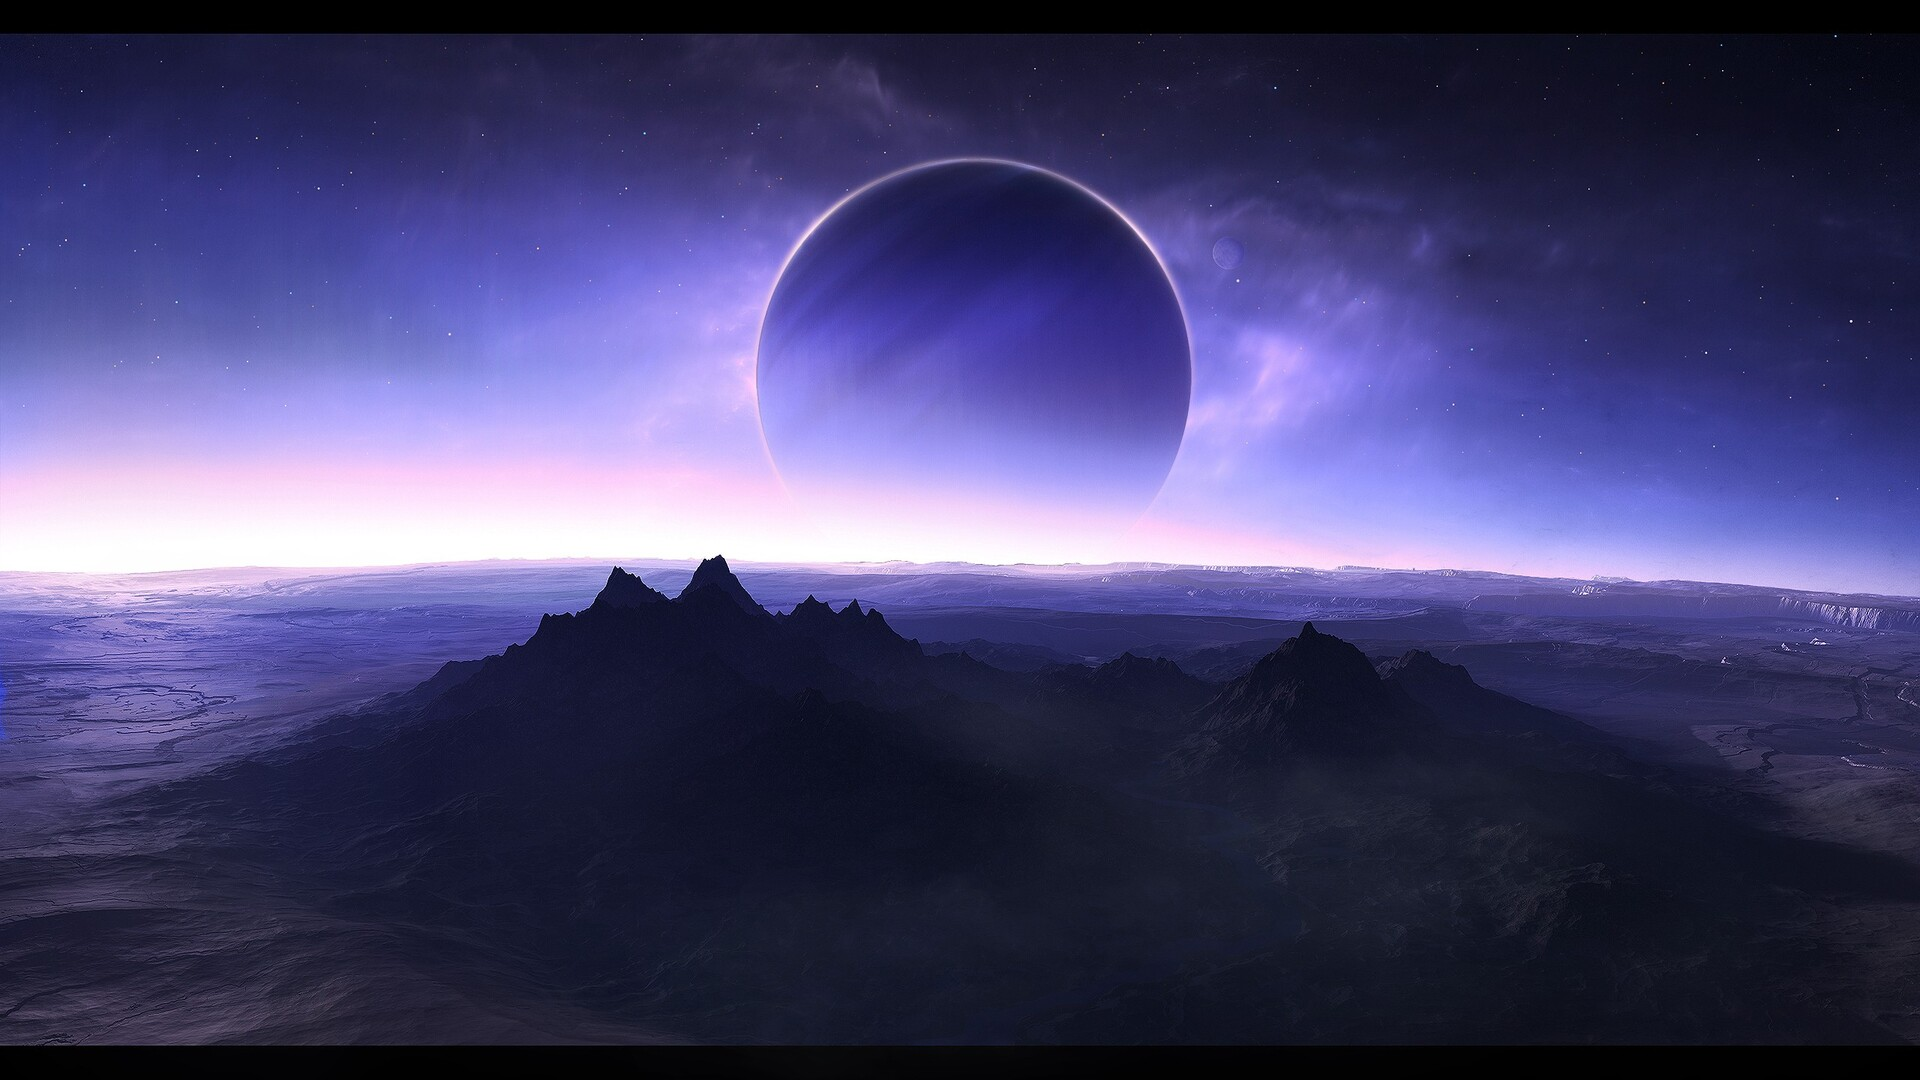 Universe Wallpapers 1080p 75 Images: 1920x1080 Scifi Twilight Laptop Full HD 1080P HD 4k